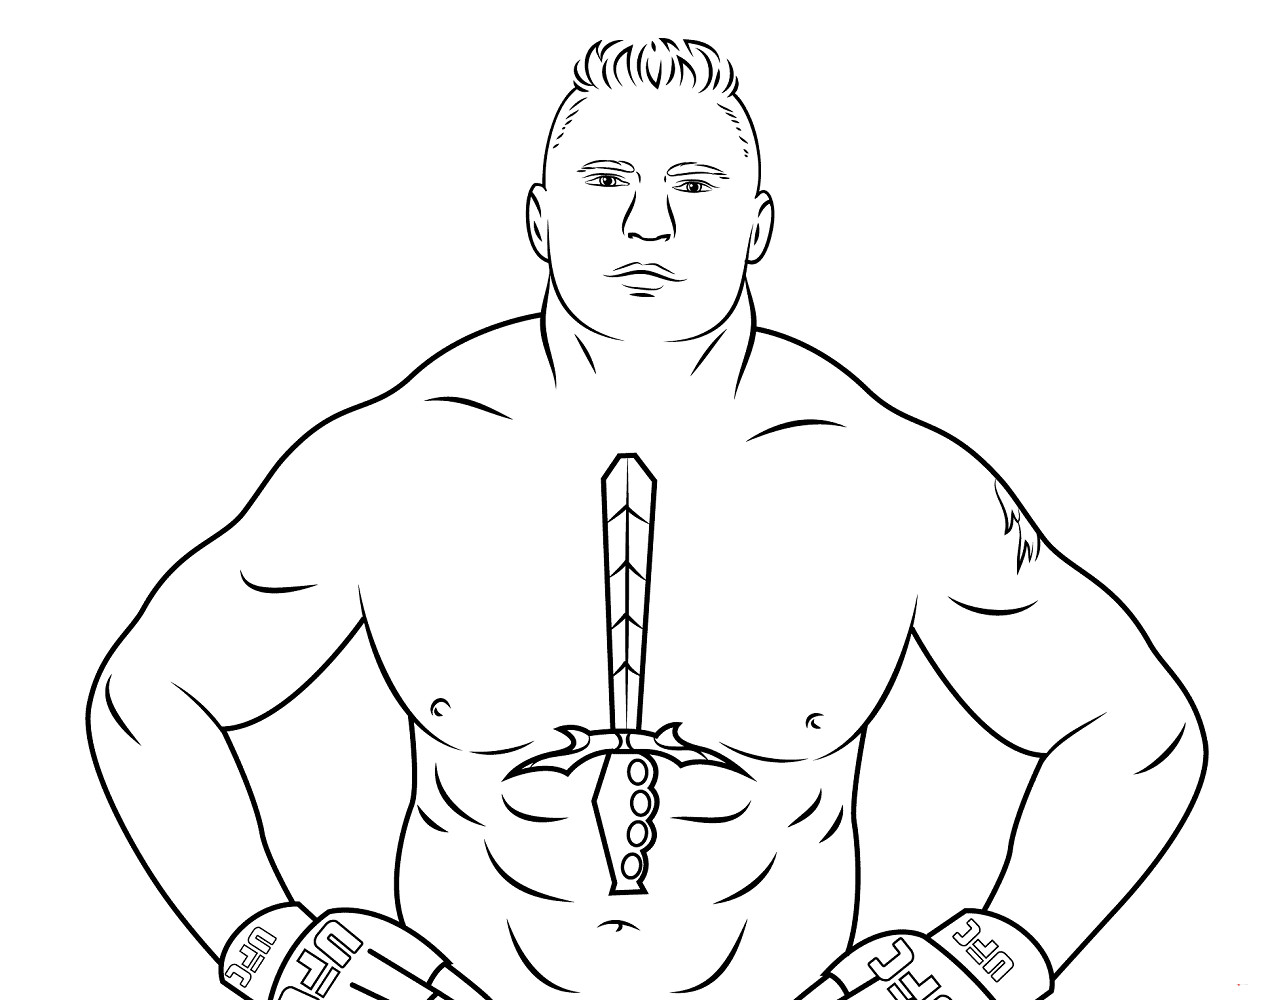 Wwe Printable Coloring Pages  Free Printable World Wrestling Entertainment WWE